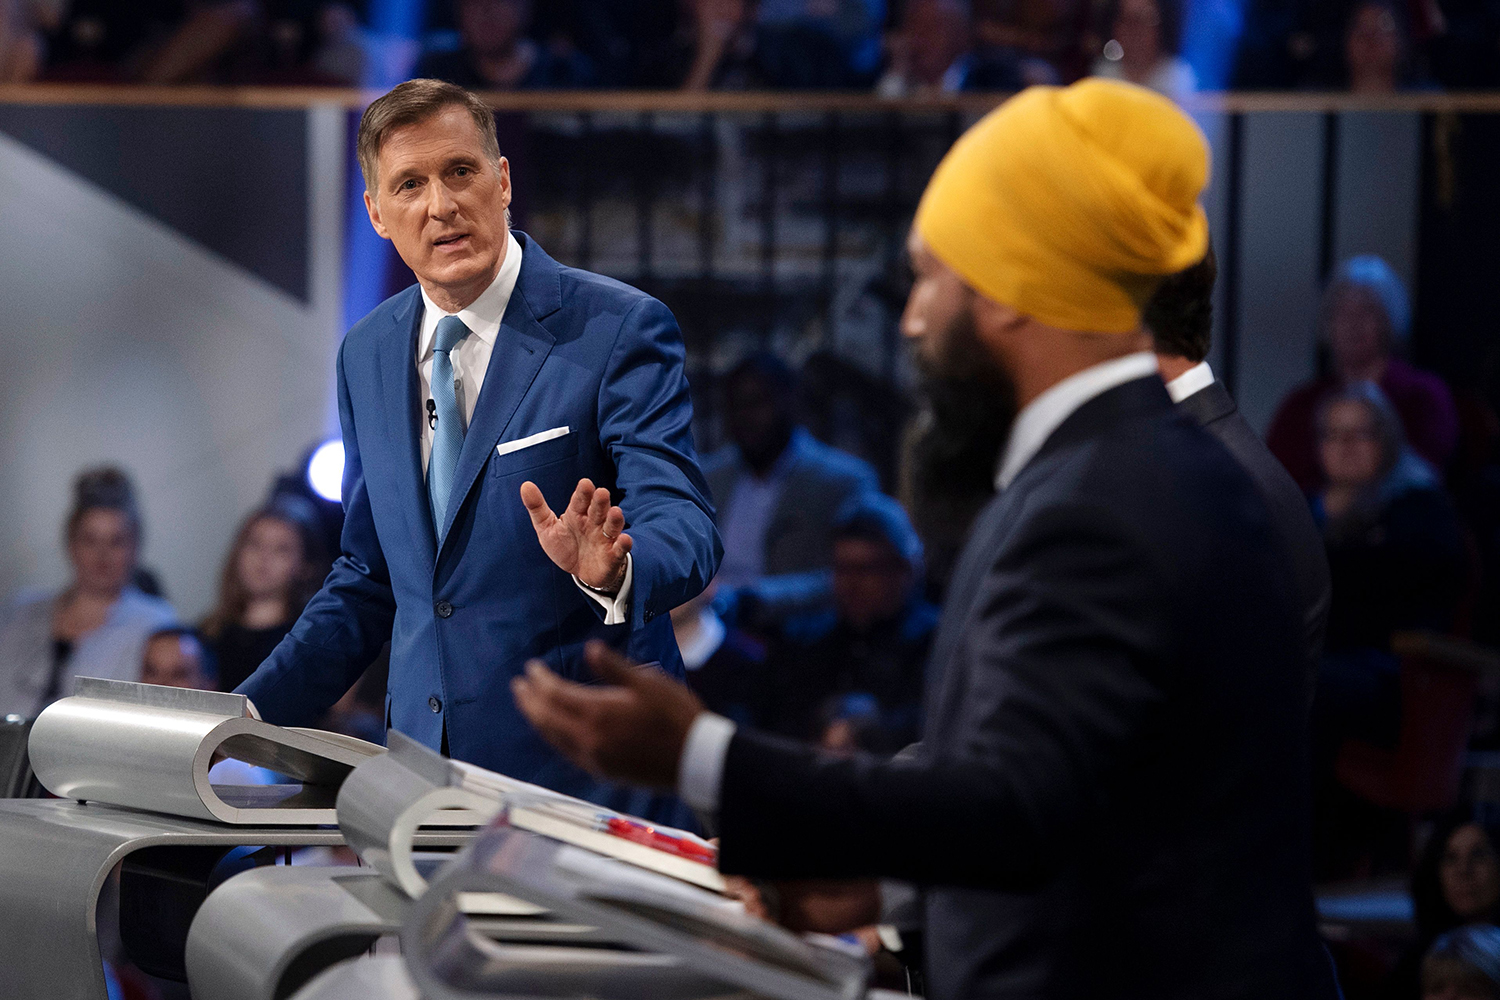 Bernier responds to NDP leader Jagmeet Singh during the Federal Leaders Debate in Gatineau, Quebec, on Oc.t 7.